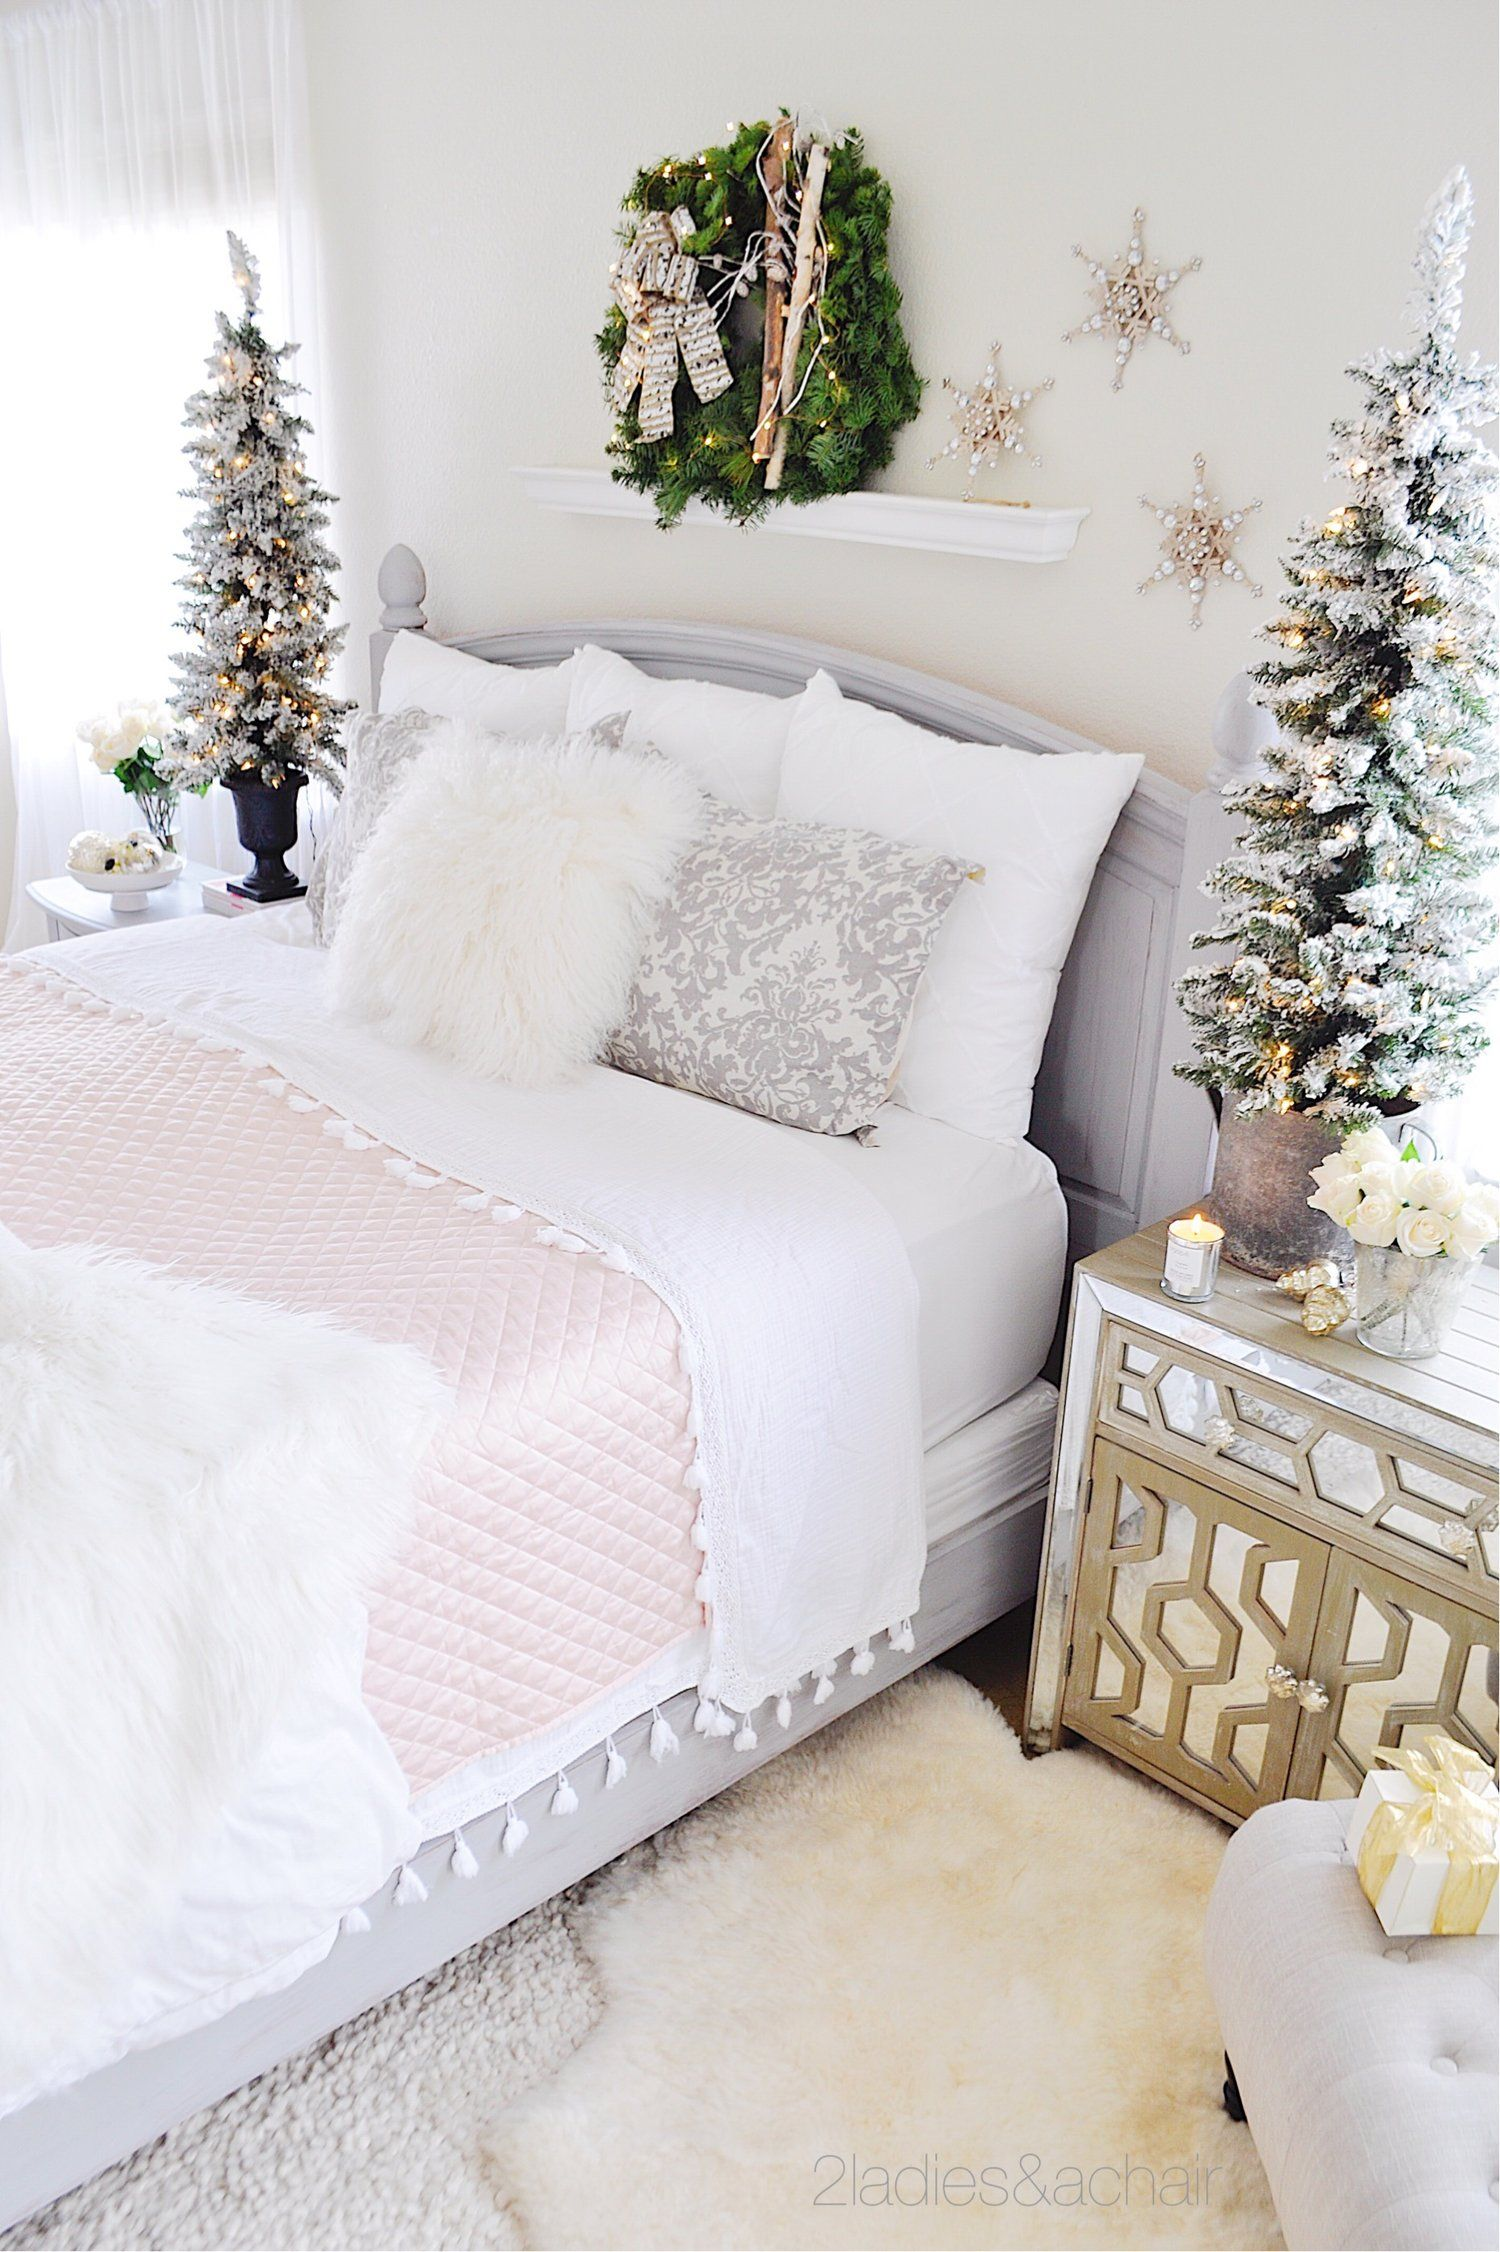 Simple Christmas Decor Ideas For Your Bedroom 2 Ladies A Chair Christmas Room Decor Christmas Decorations Bedroom Holiday Bedroom